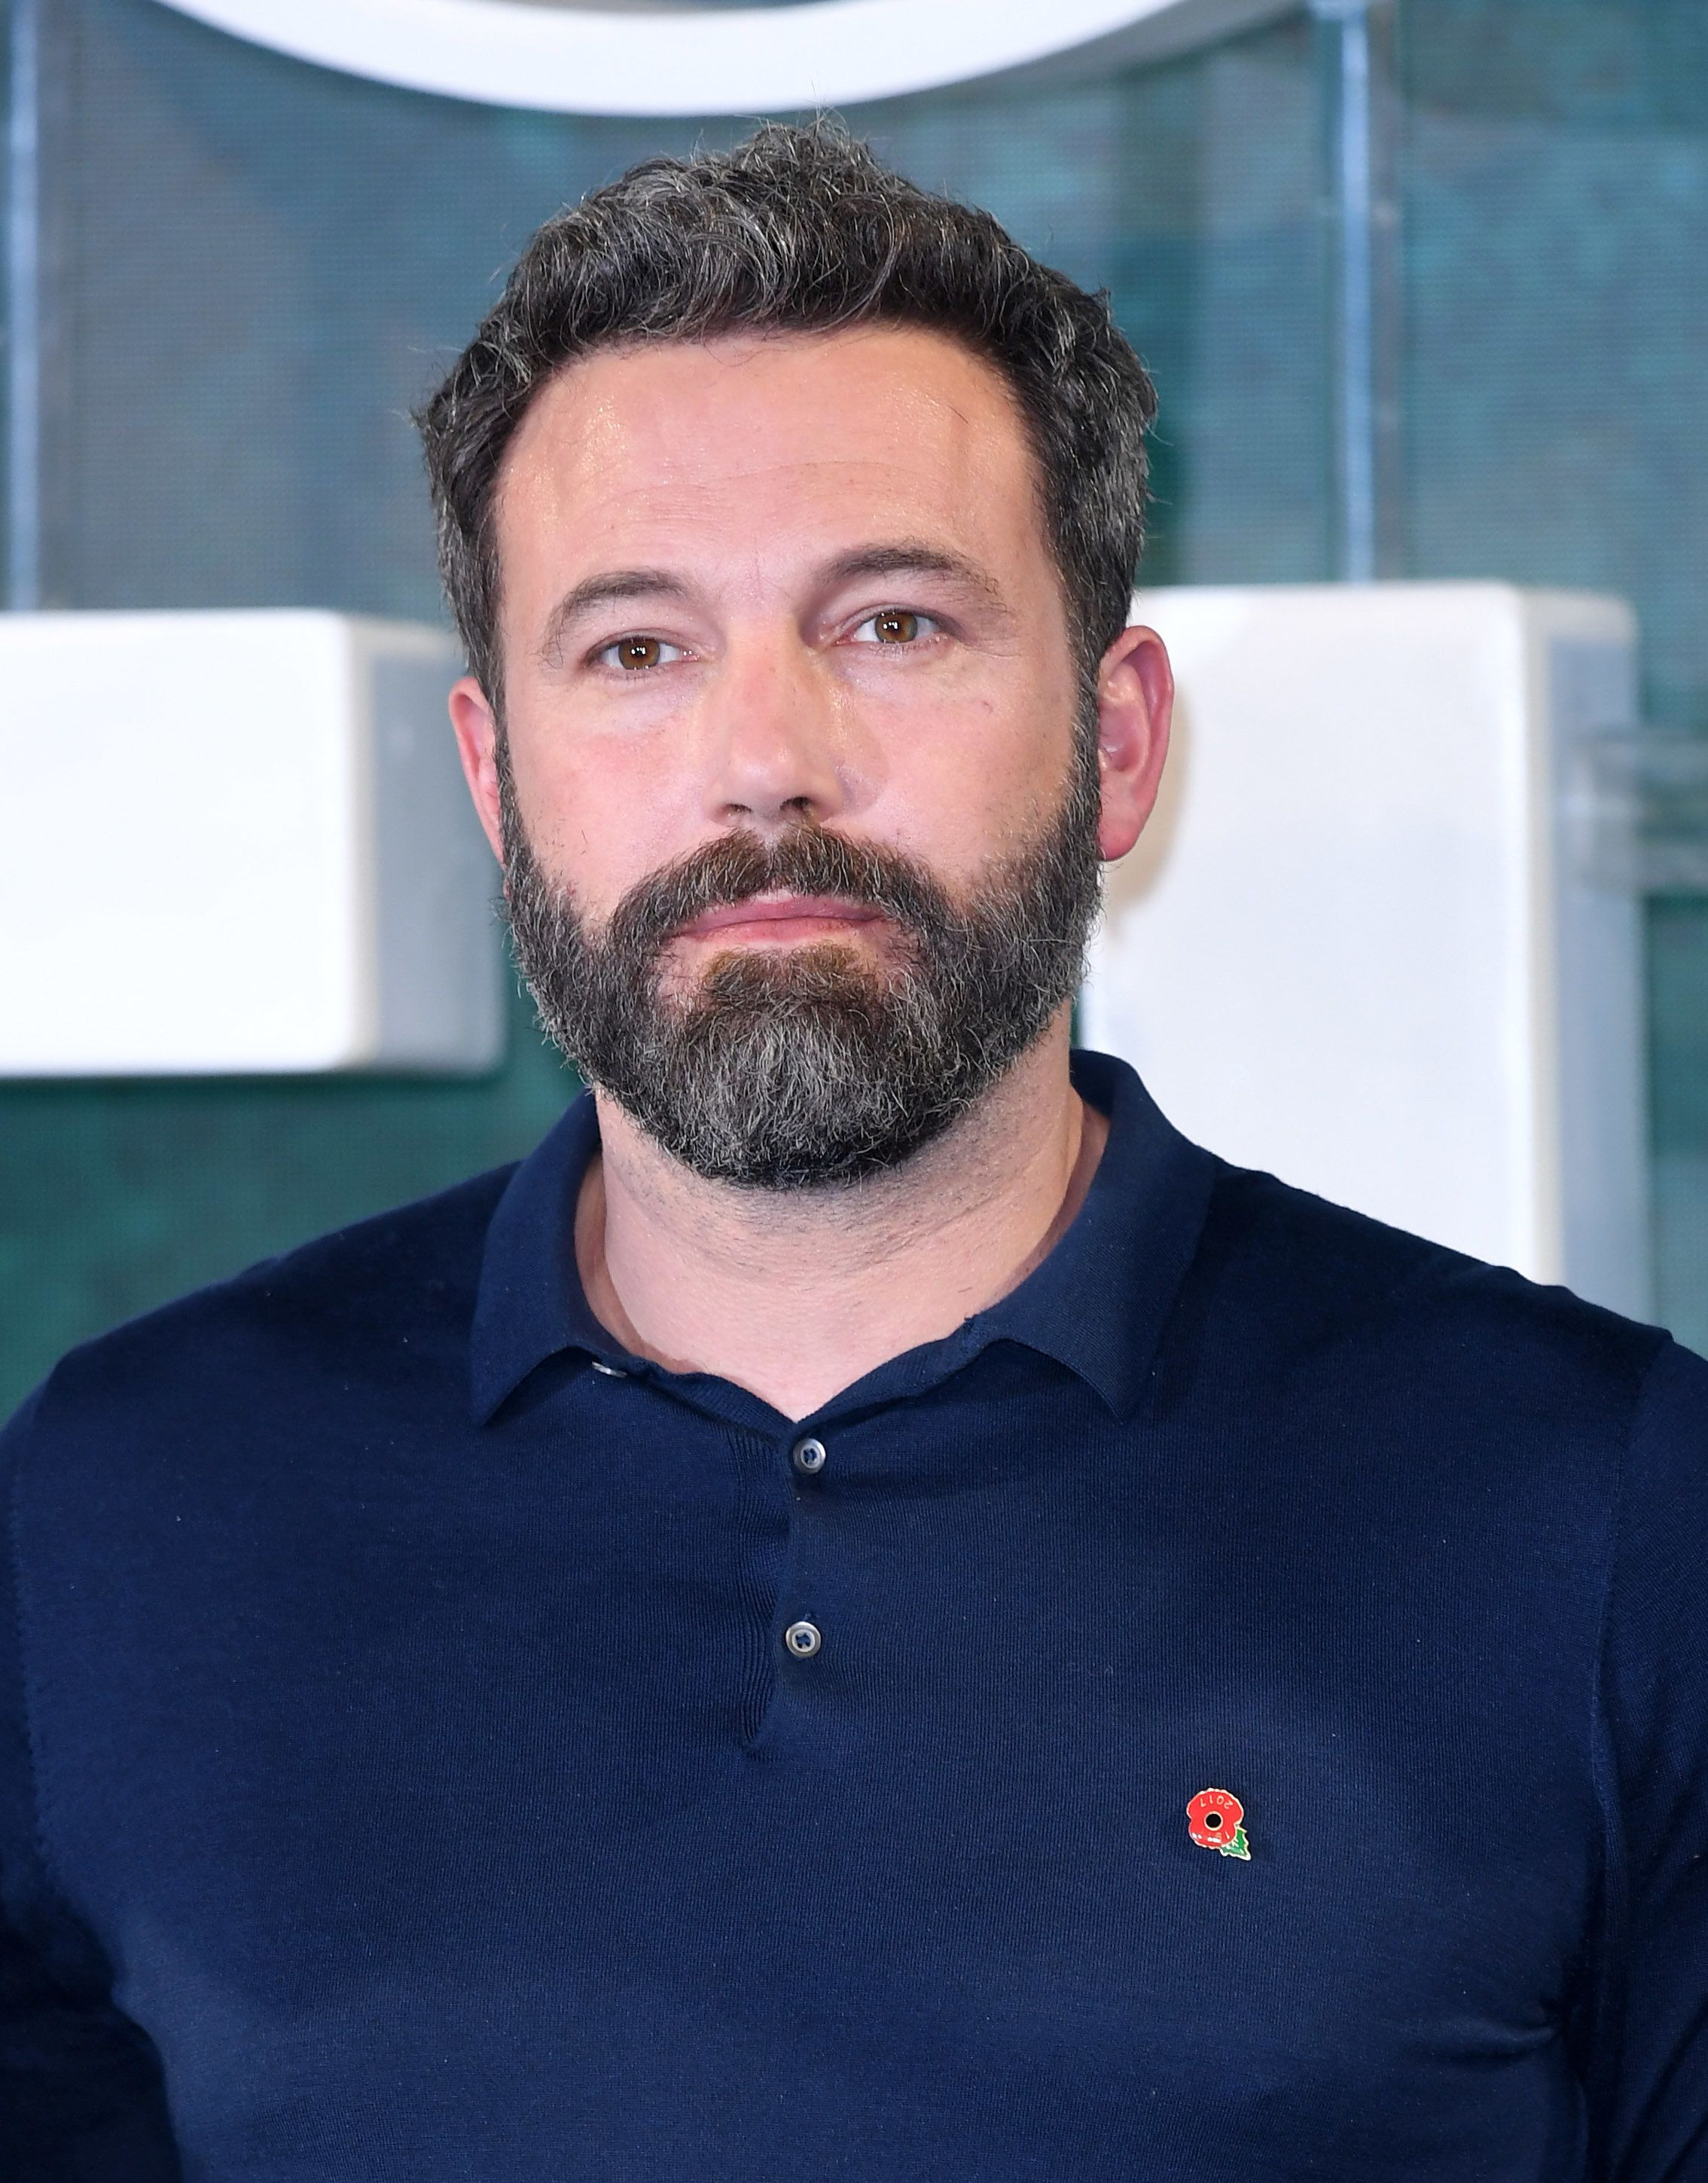 Ben Affleck Pledges To Address His Behavior After Sexual Harassment Claims